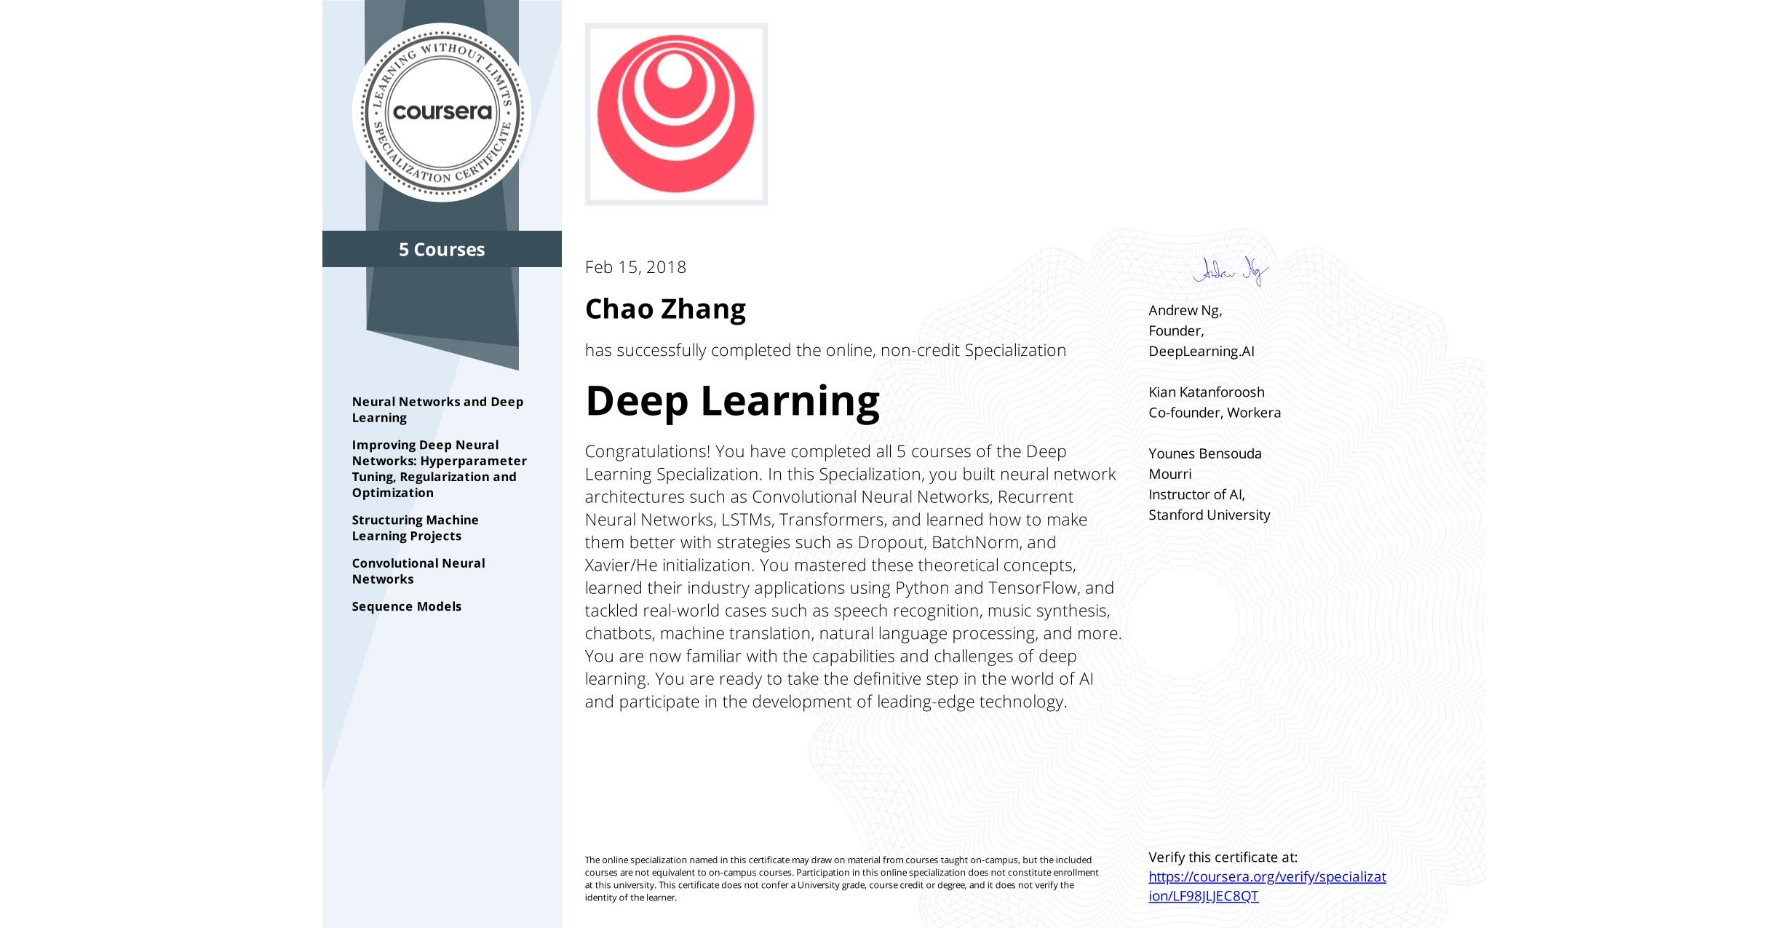 View certificate for Chao Zhang, Deep Learning, offered through Coursera. The Deep Learning Specialization is designed to prepare learners to participate in the development of cutting-edge AI technology, and to understand the capability, the challenges, and the consequences of the rise of deep learning. Through five interconnected courses, learners develop a profound knowledge of the hottest AI algorithms, mastering deep learning from its foundations (neural networks) to its industry applications (Computer Vision, Natural Language Processing, Speech Recognition, etc.).